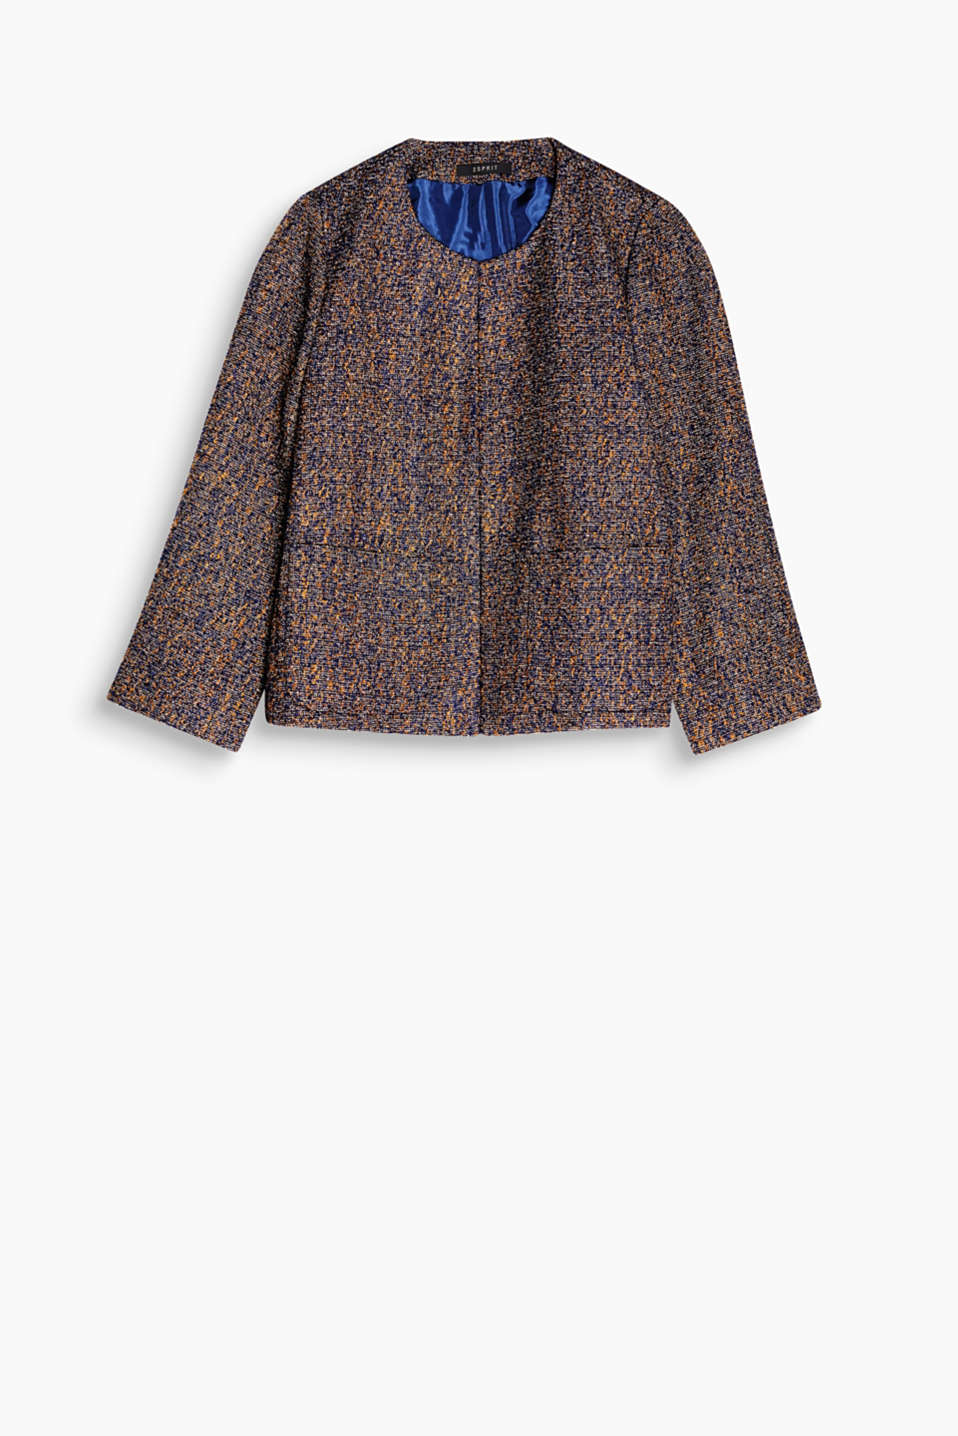 Casual chic: subtly shimmering, A-line bouclé jacket with patch pockets